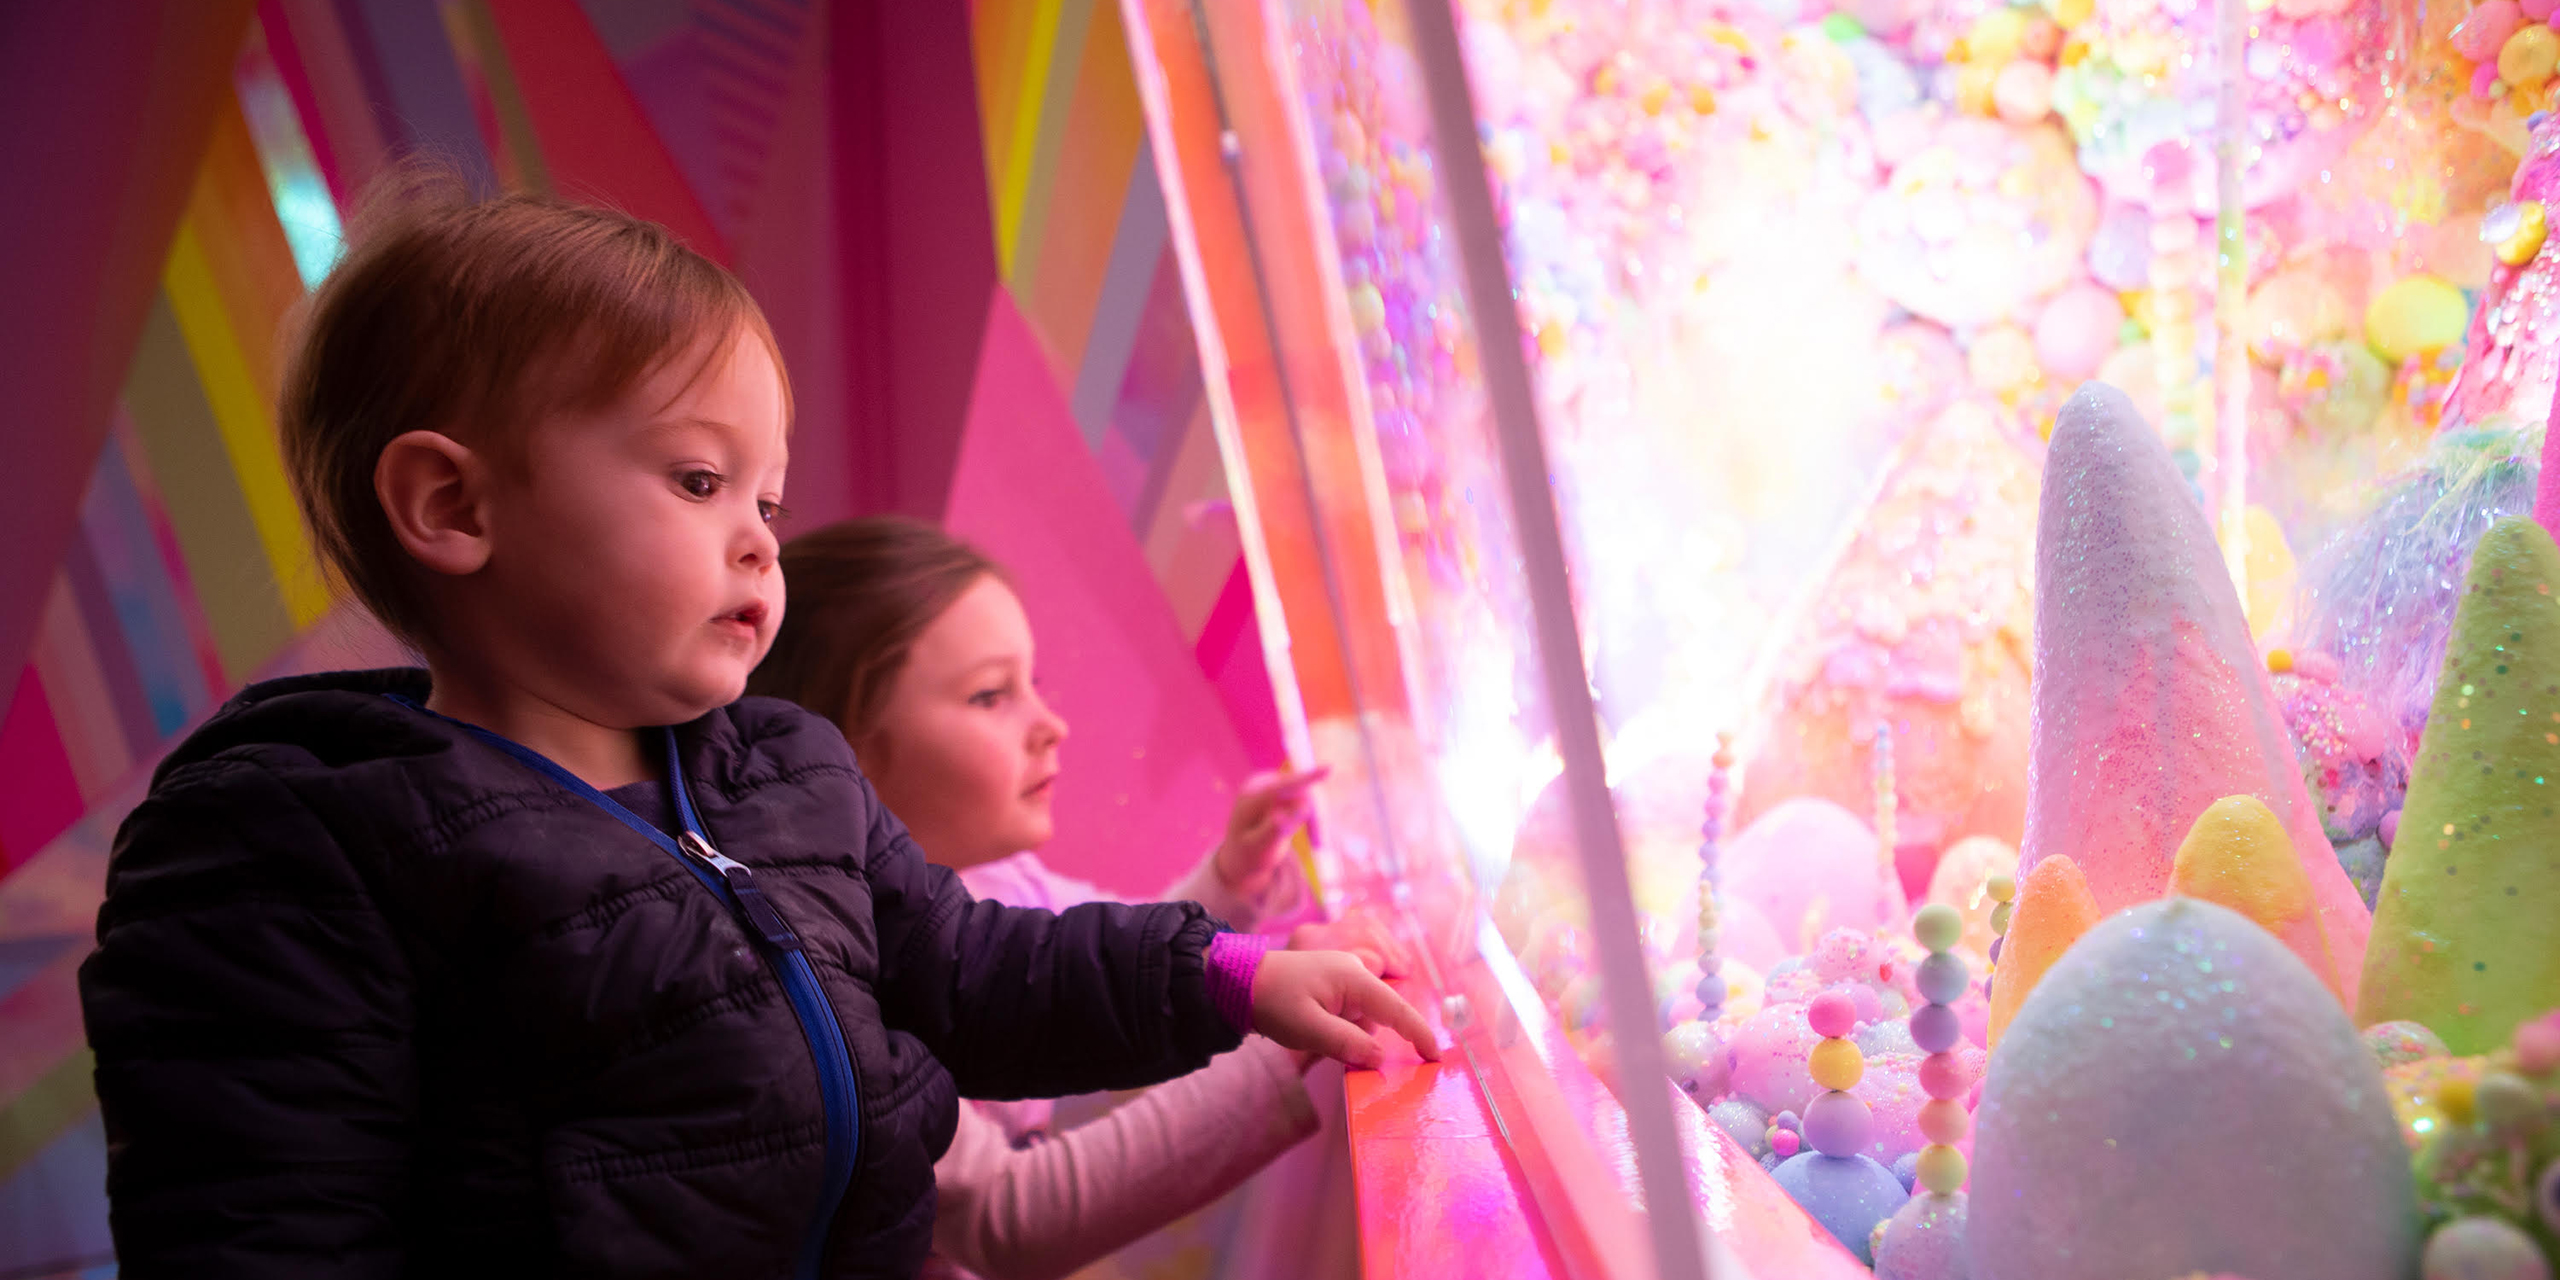 Kids at Meow Wolf in Santa Fe, New Mexico; Courtesy of Meow Wolf